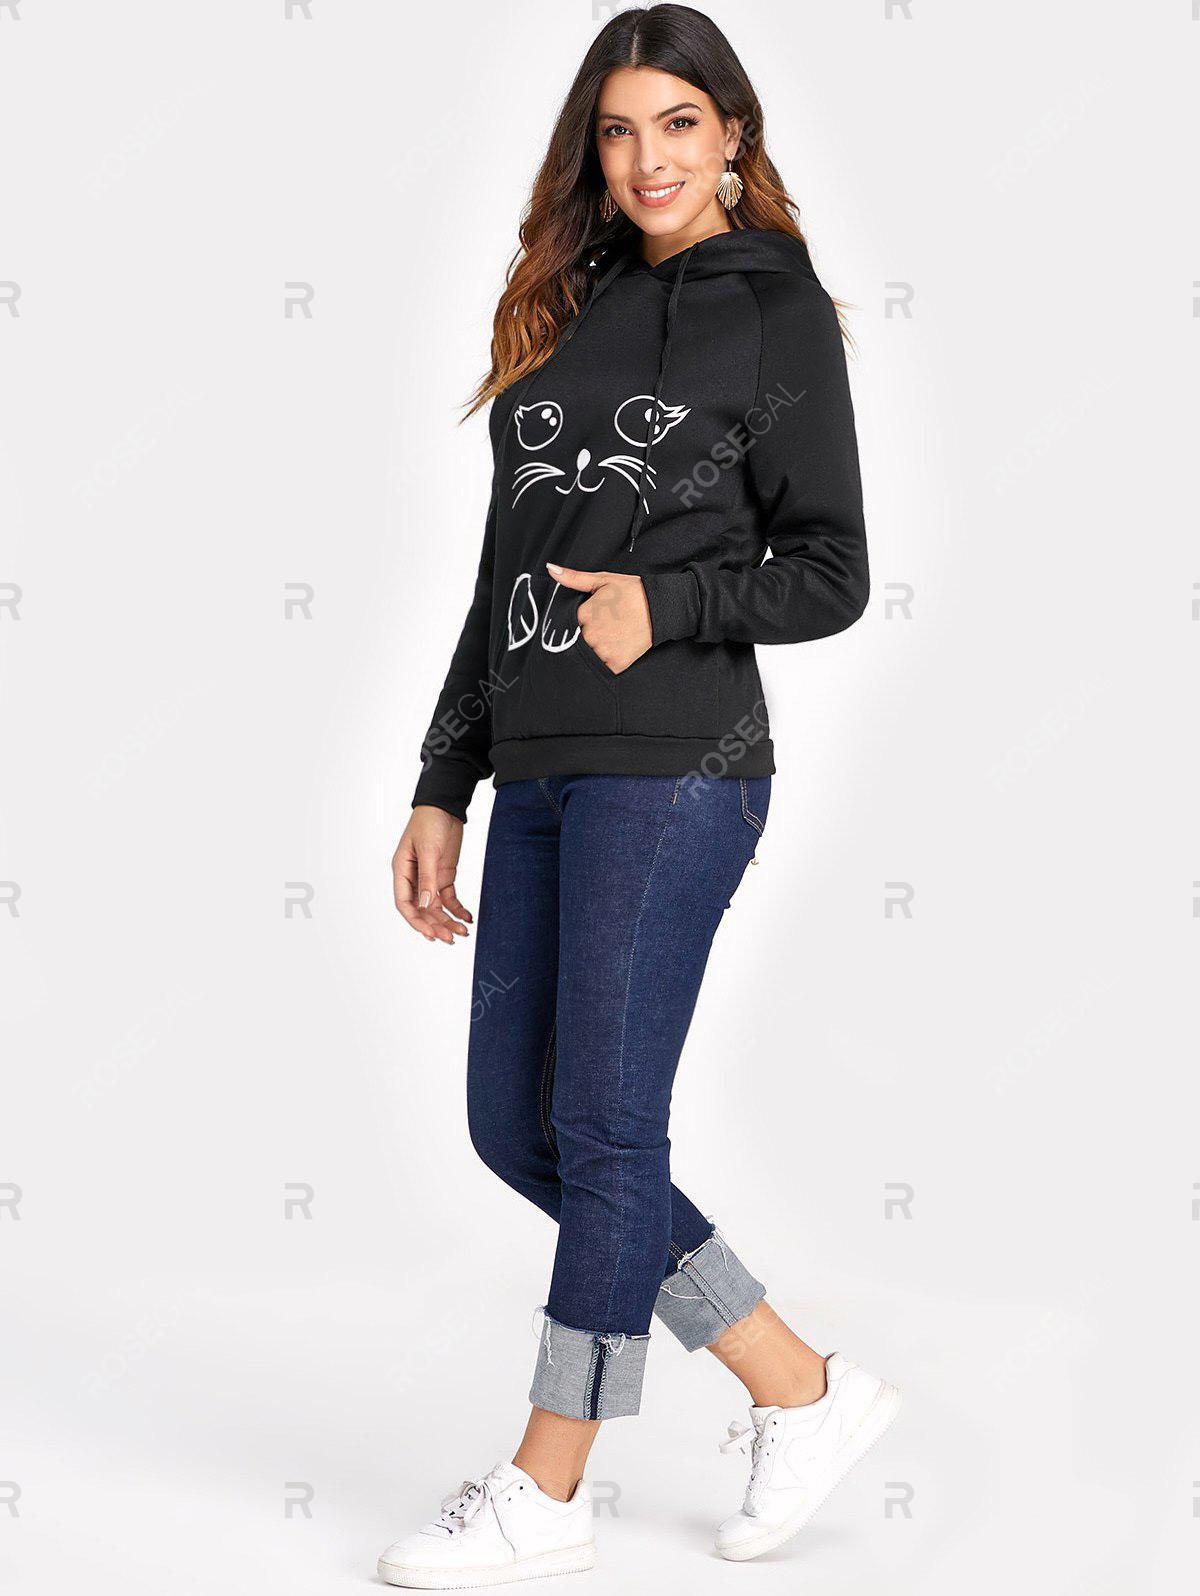 https://www.rosegal.com/sweatshirts-hoodies/cat-ear-hoodie-with-fleece-lining-2403400.html?lkid=16127505